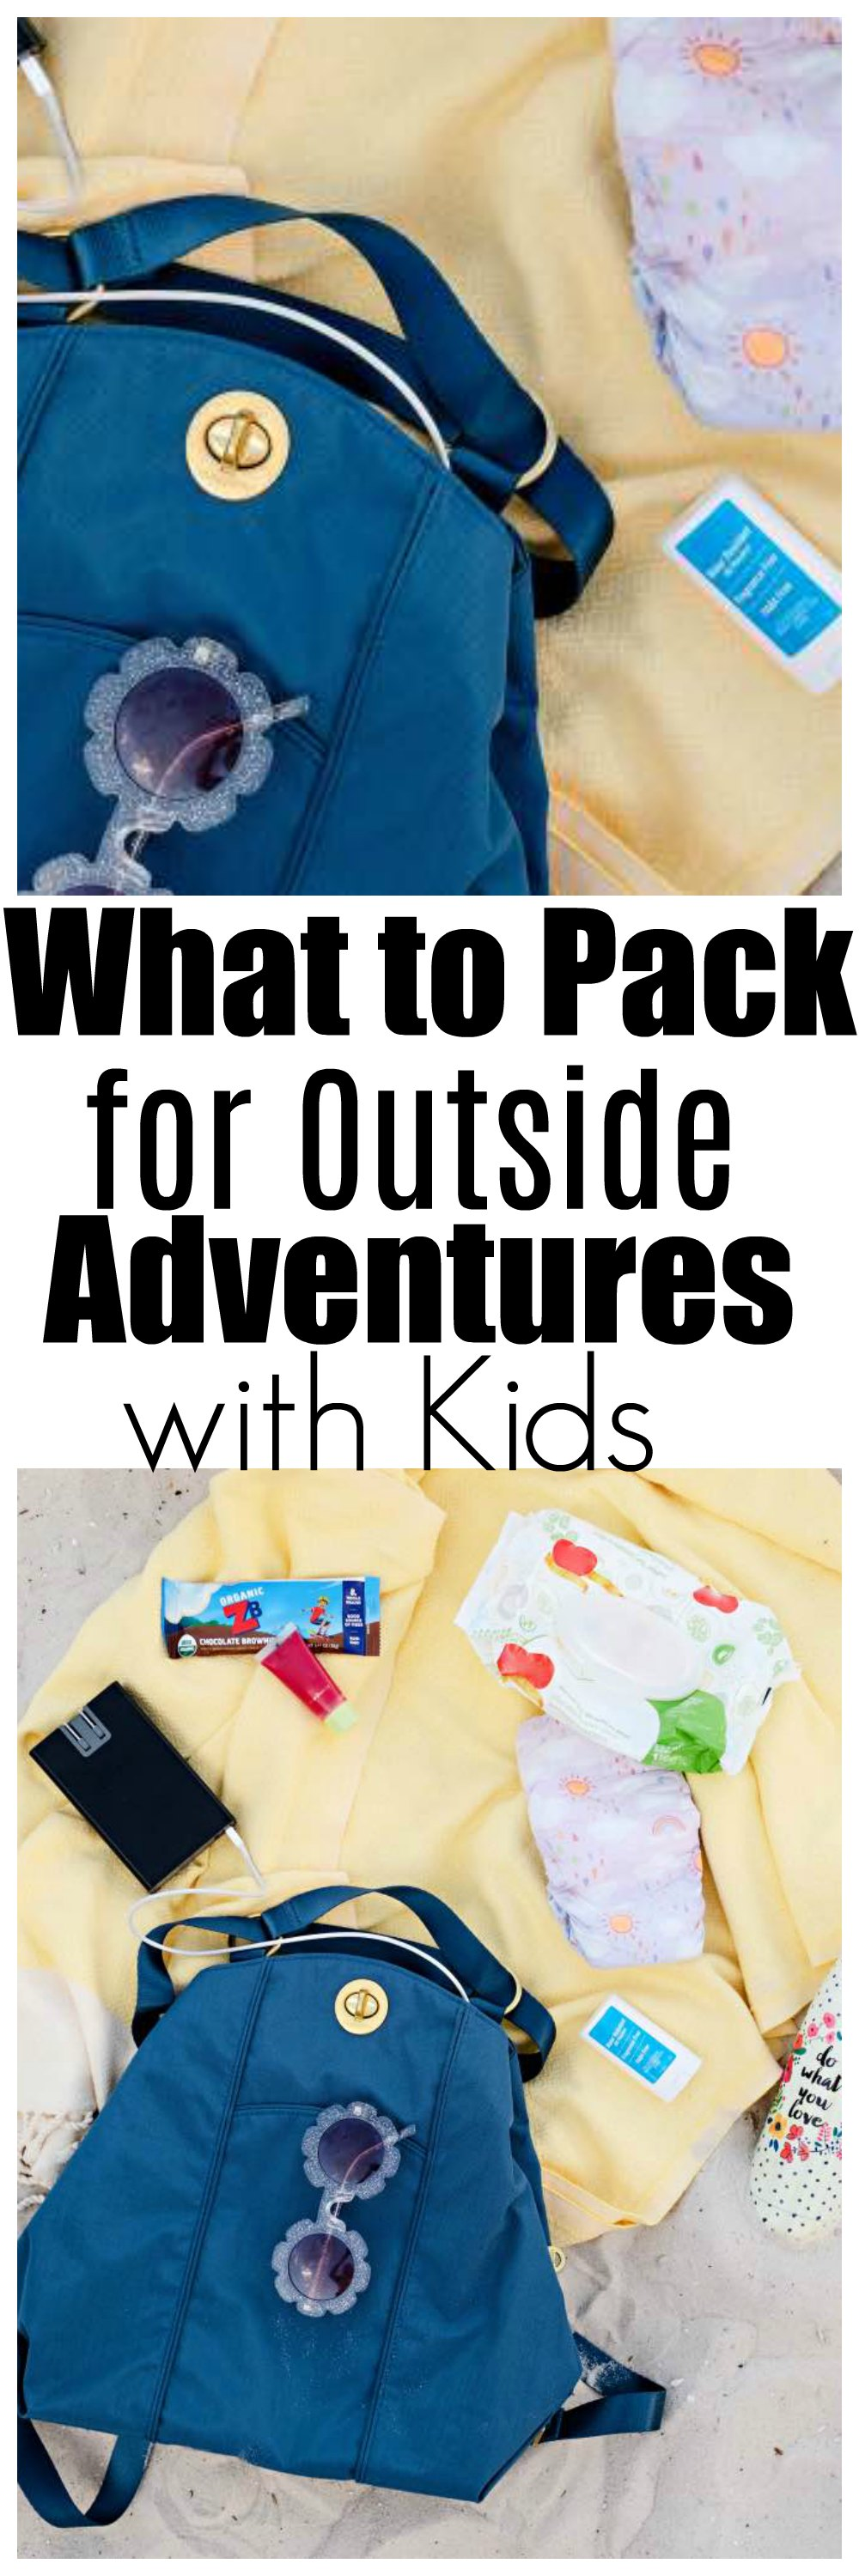 baggalini with zaps - What to Pack for a Day Out with Kids by Atlanta mom blogger Happily Hughes